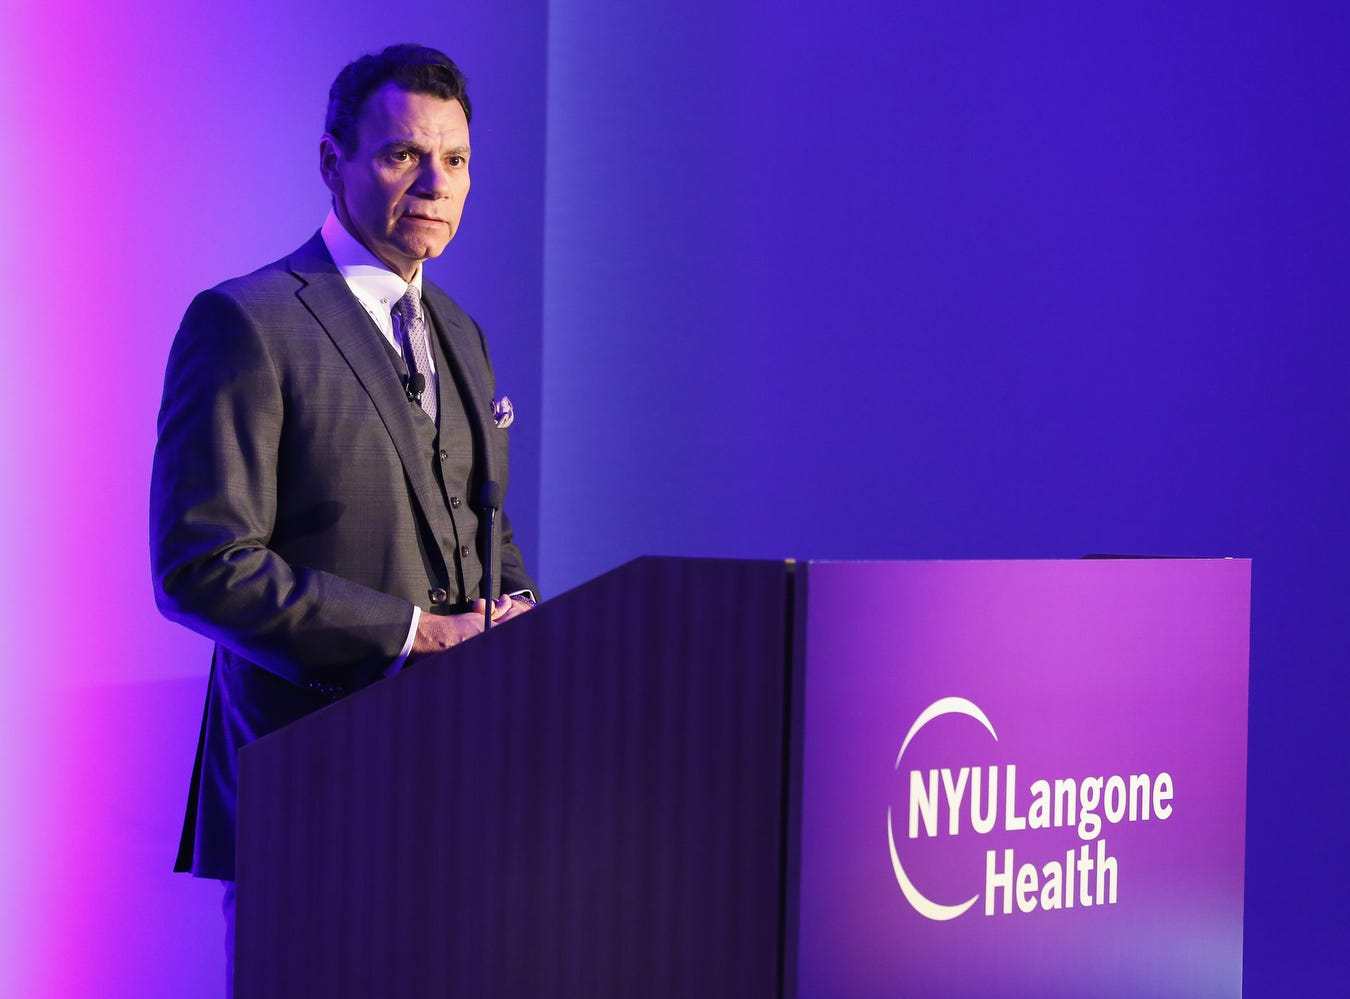 Eduardo D. Rodriguez, MD, DDS speaks during the Face Transplant Announcement. He is chair of the Hansjörg Wyss Department of Plastic Surgery at NYU's Langone Health and has conducted two other face transplant surgeries.